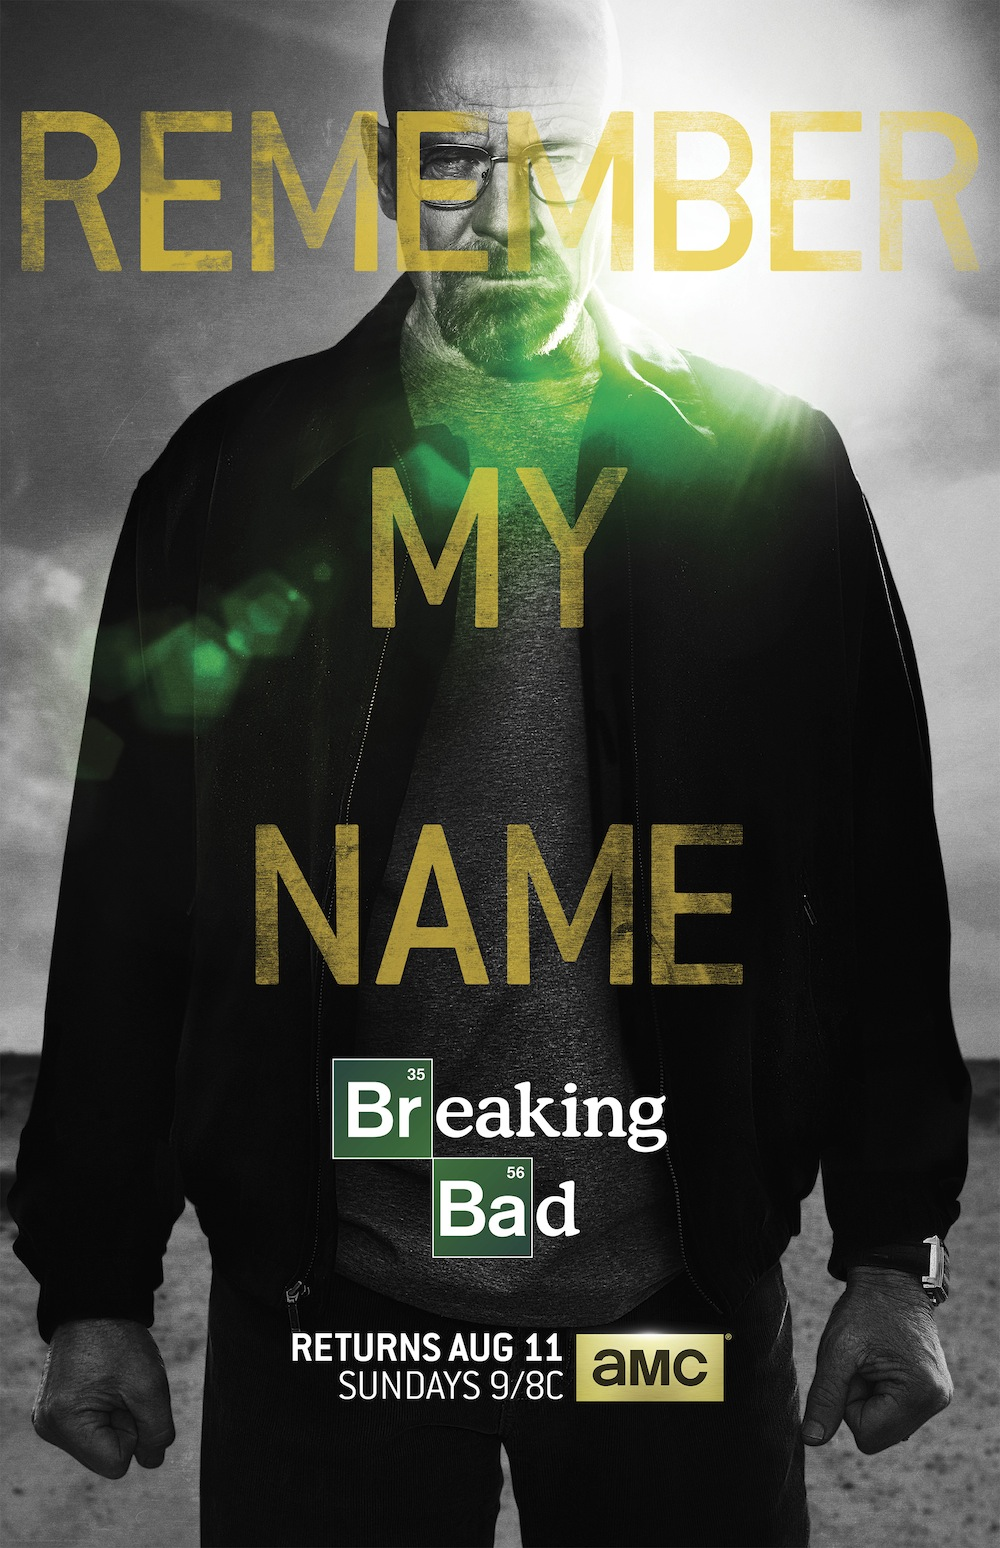 Breaking Bad season 5 part 2 episode 1 premiere is here to watch, for